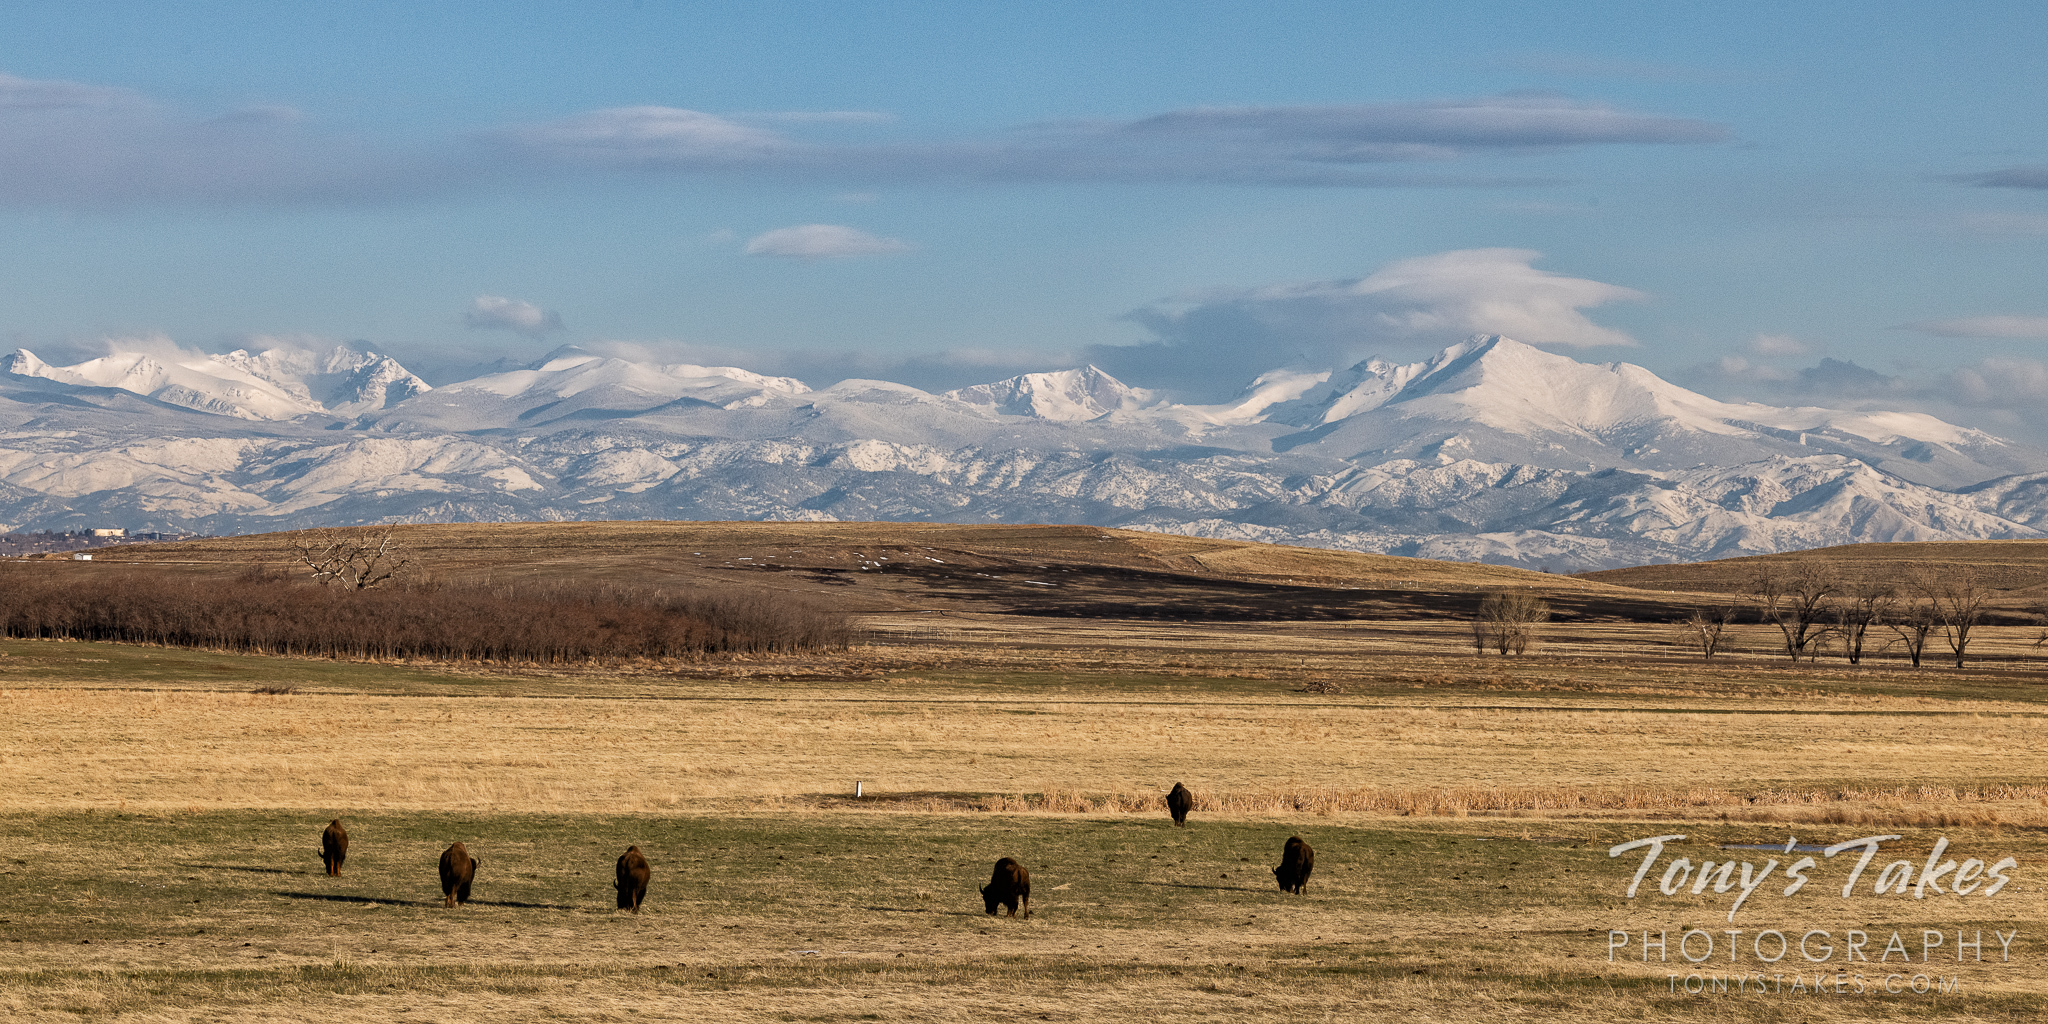 Bison graze with a scene showing the Great Plains to the Rocky Mountains